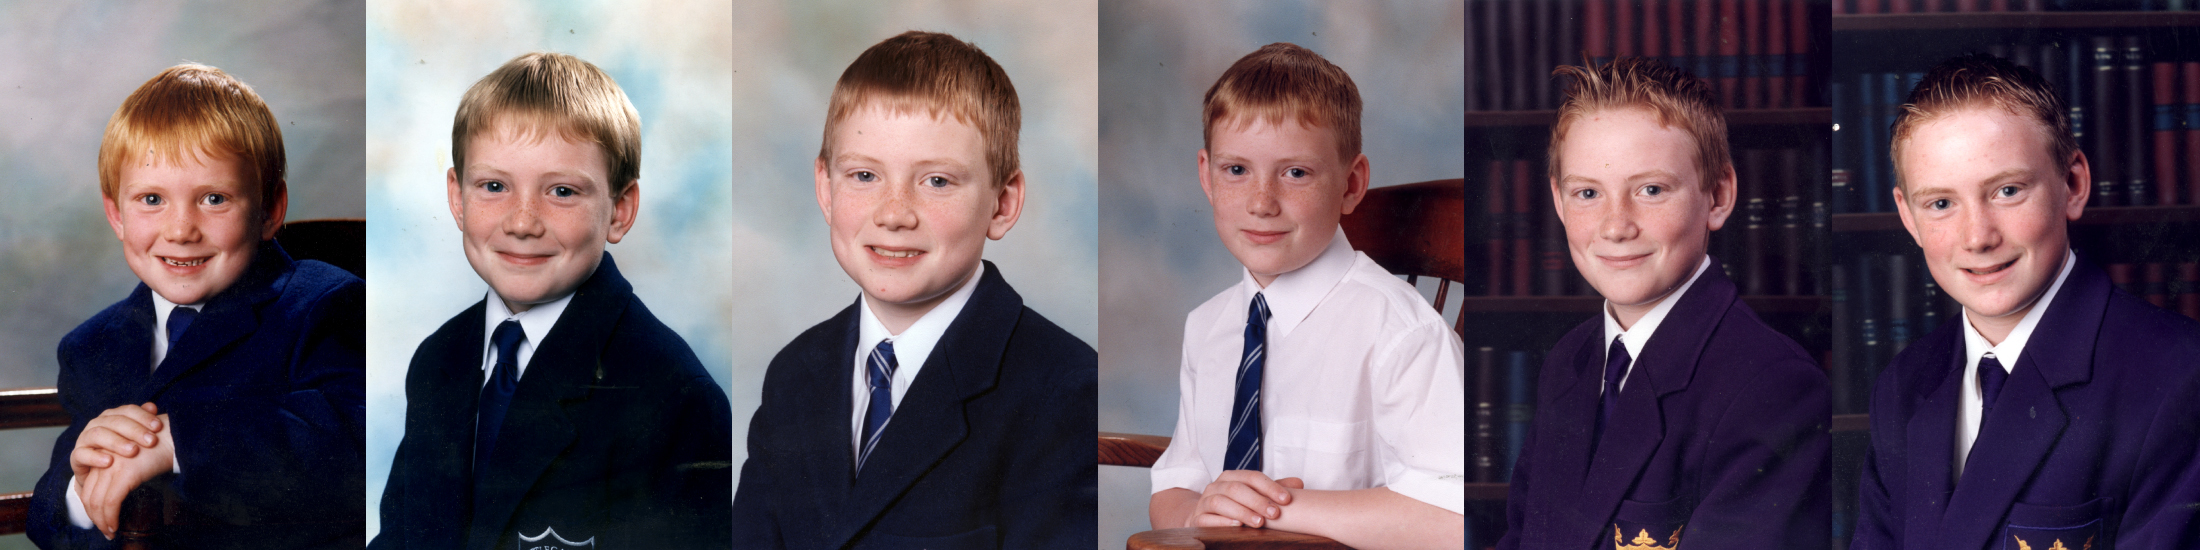 Through the years traditional photographs of school boy